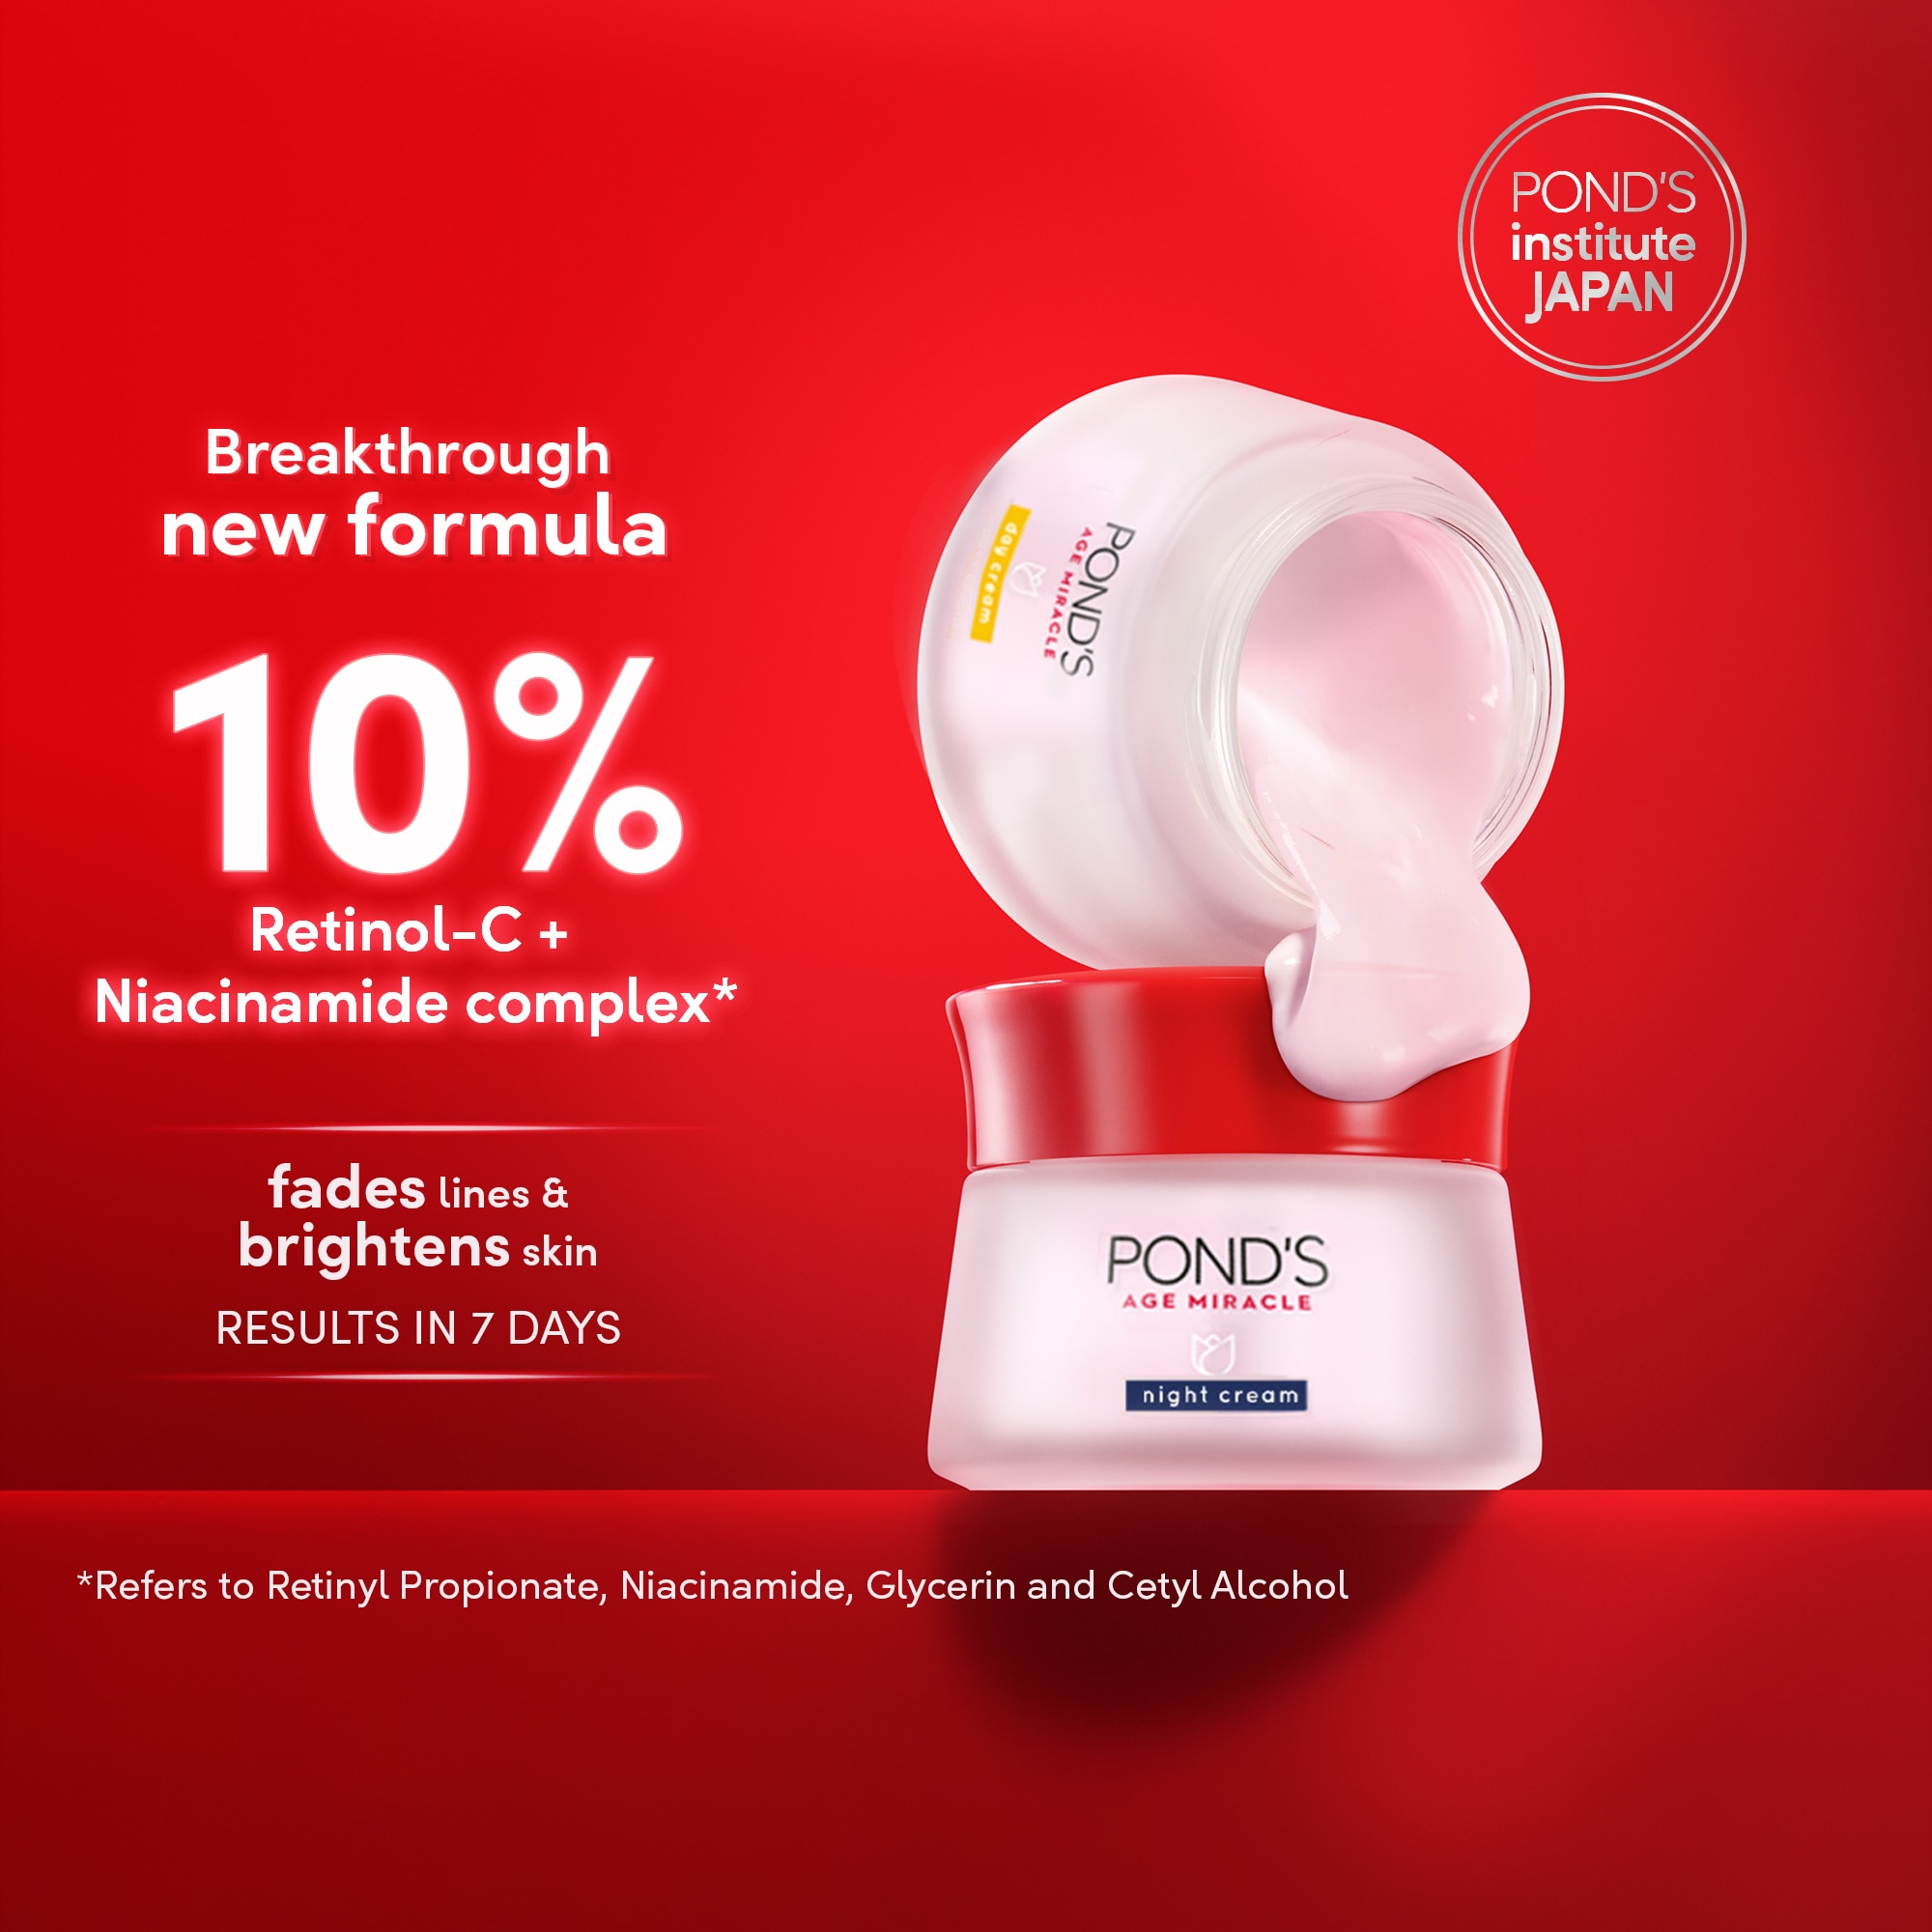 PONDSPonds Age Miracle Day Cream 50g,For WomenSummer Glow